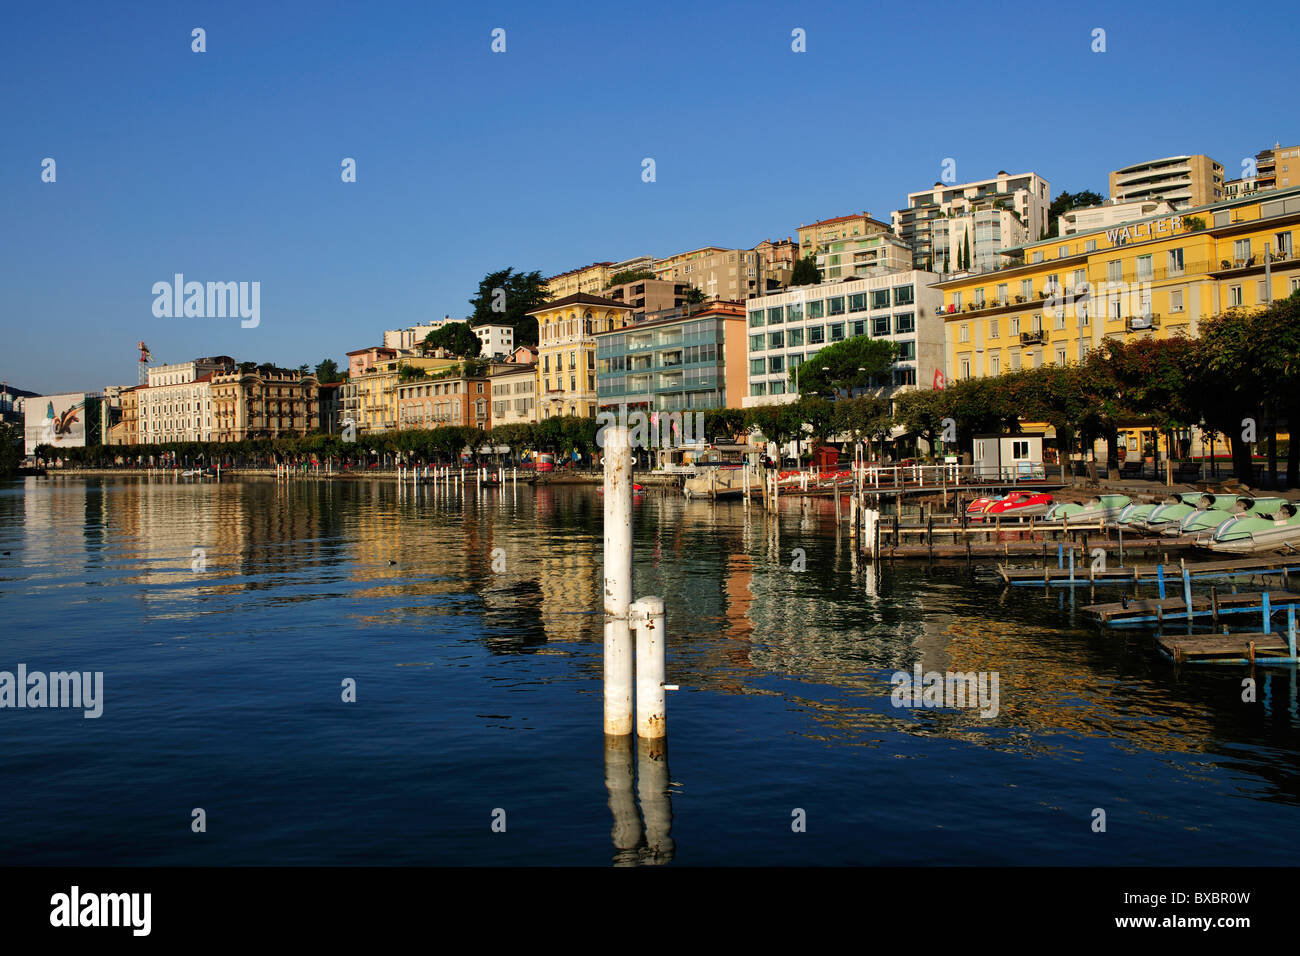 Lugano on Lago di Lugano, Lake Lugano, Canton of Ticino, Switzerland, Europe Stock Photo